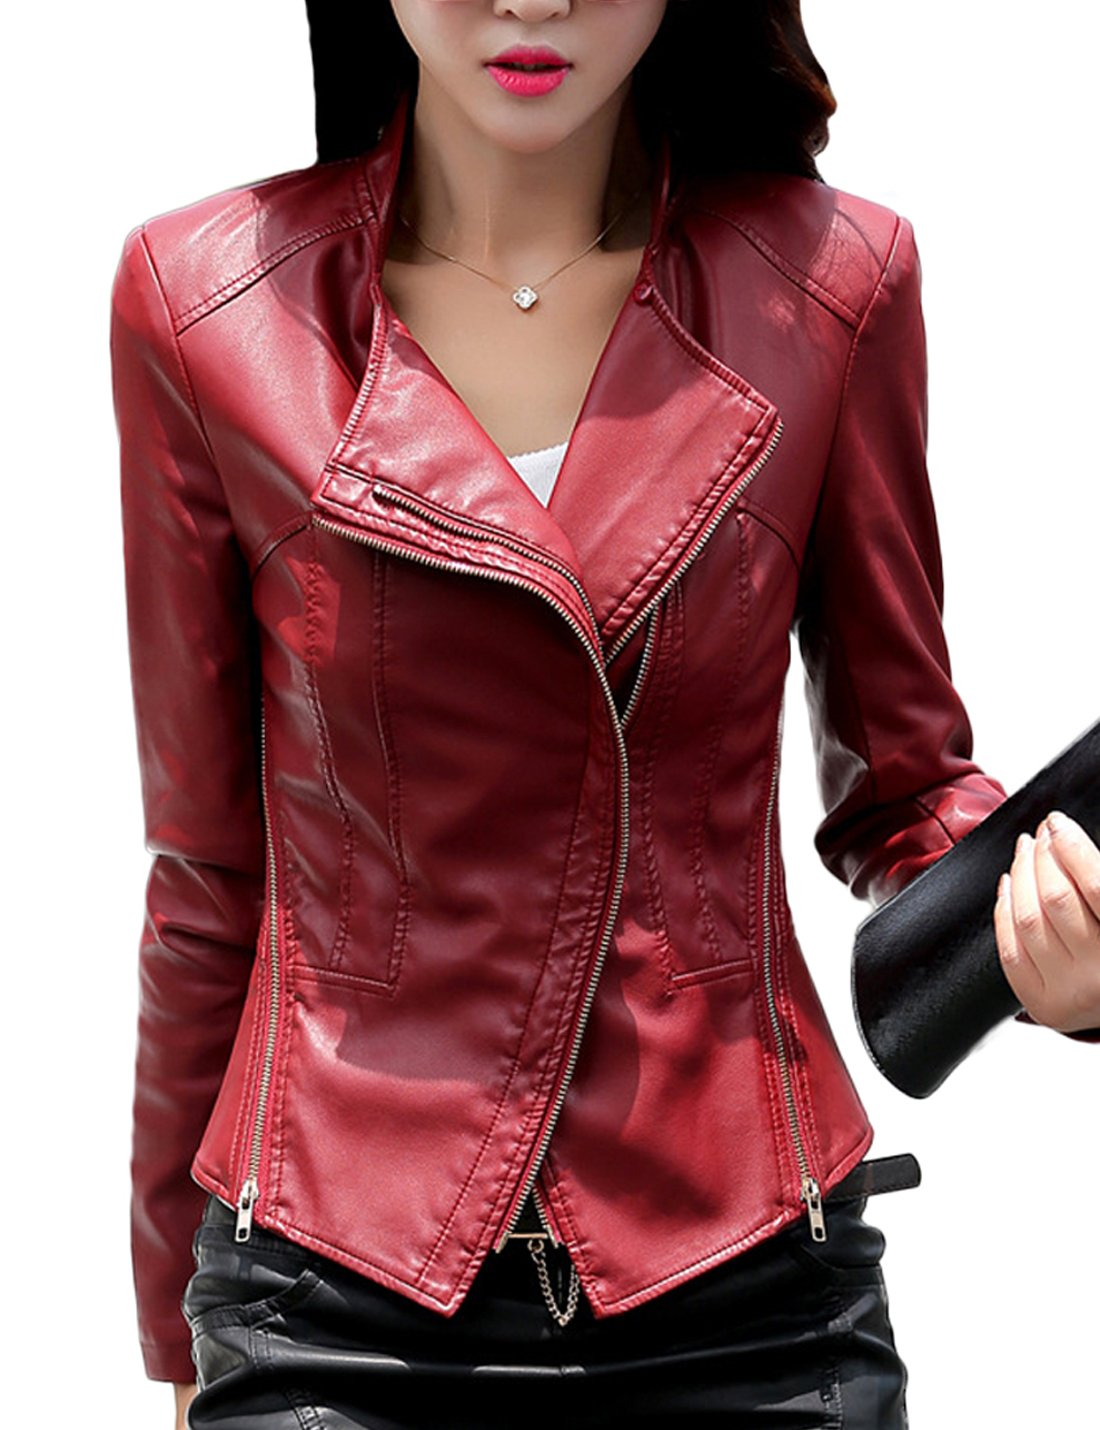 Tanming Women's Short Slim Slant Zip Faux Leather Moto Jacket Multiple Colors (XX-Large, Jujube red)